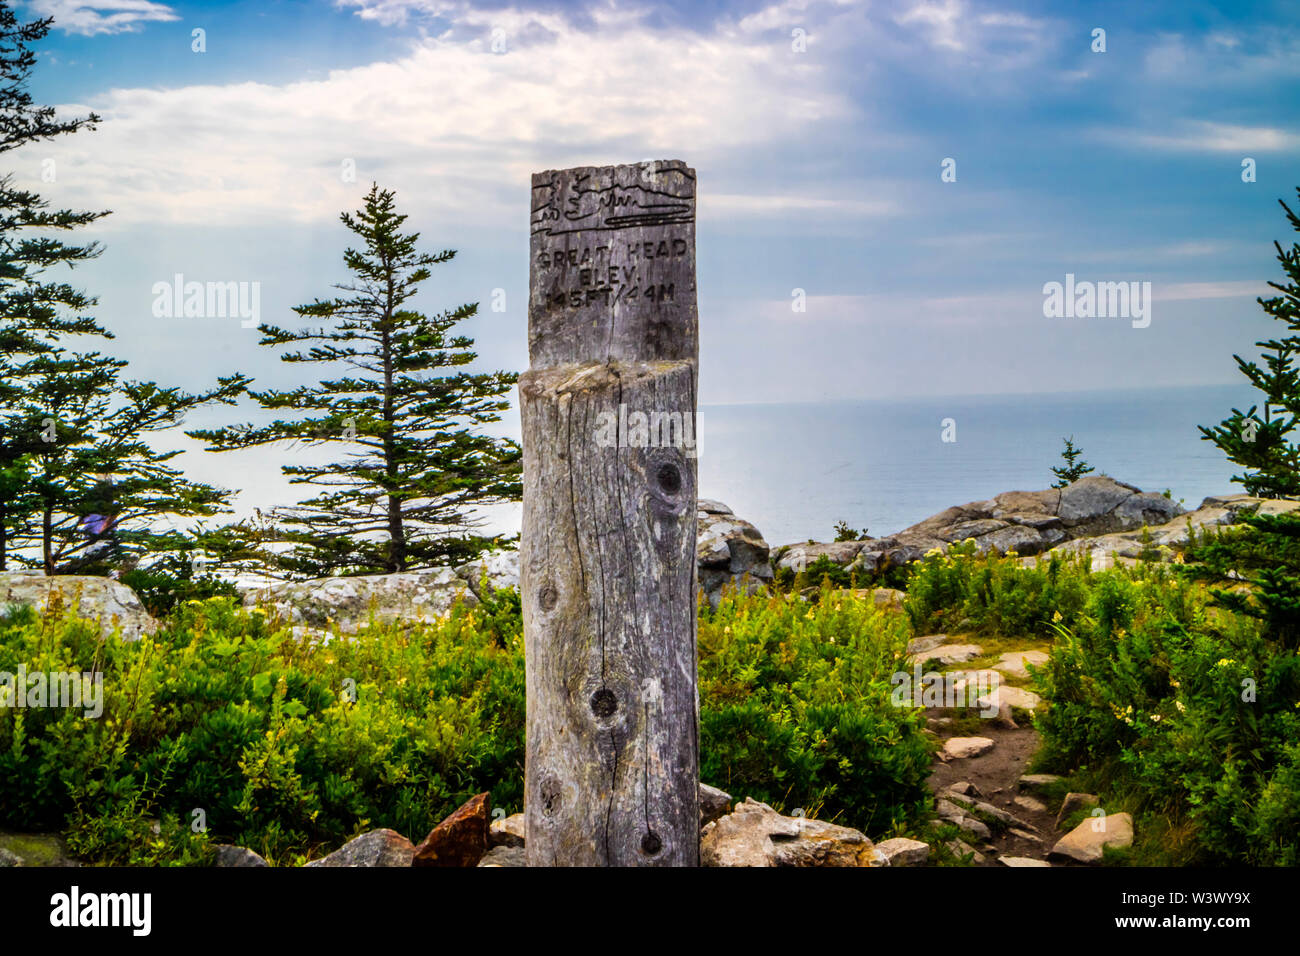 Acadia National Park, ME, USA - August 15, 2018: The Great Head Point of Elevation - Stock Image